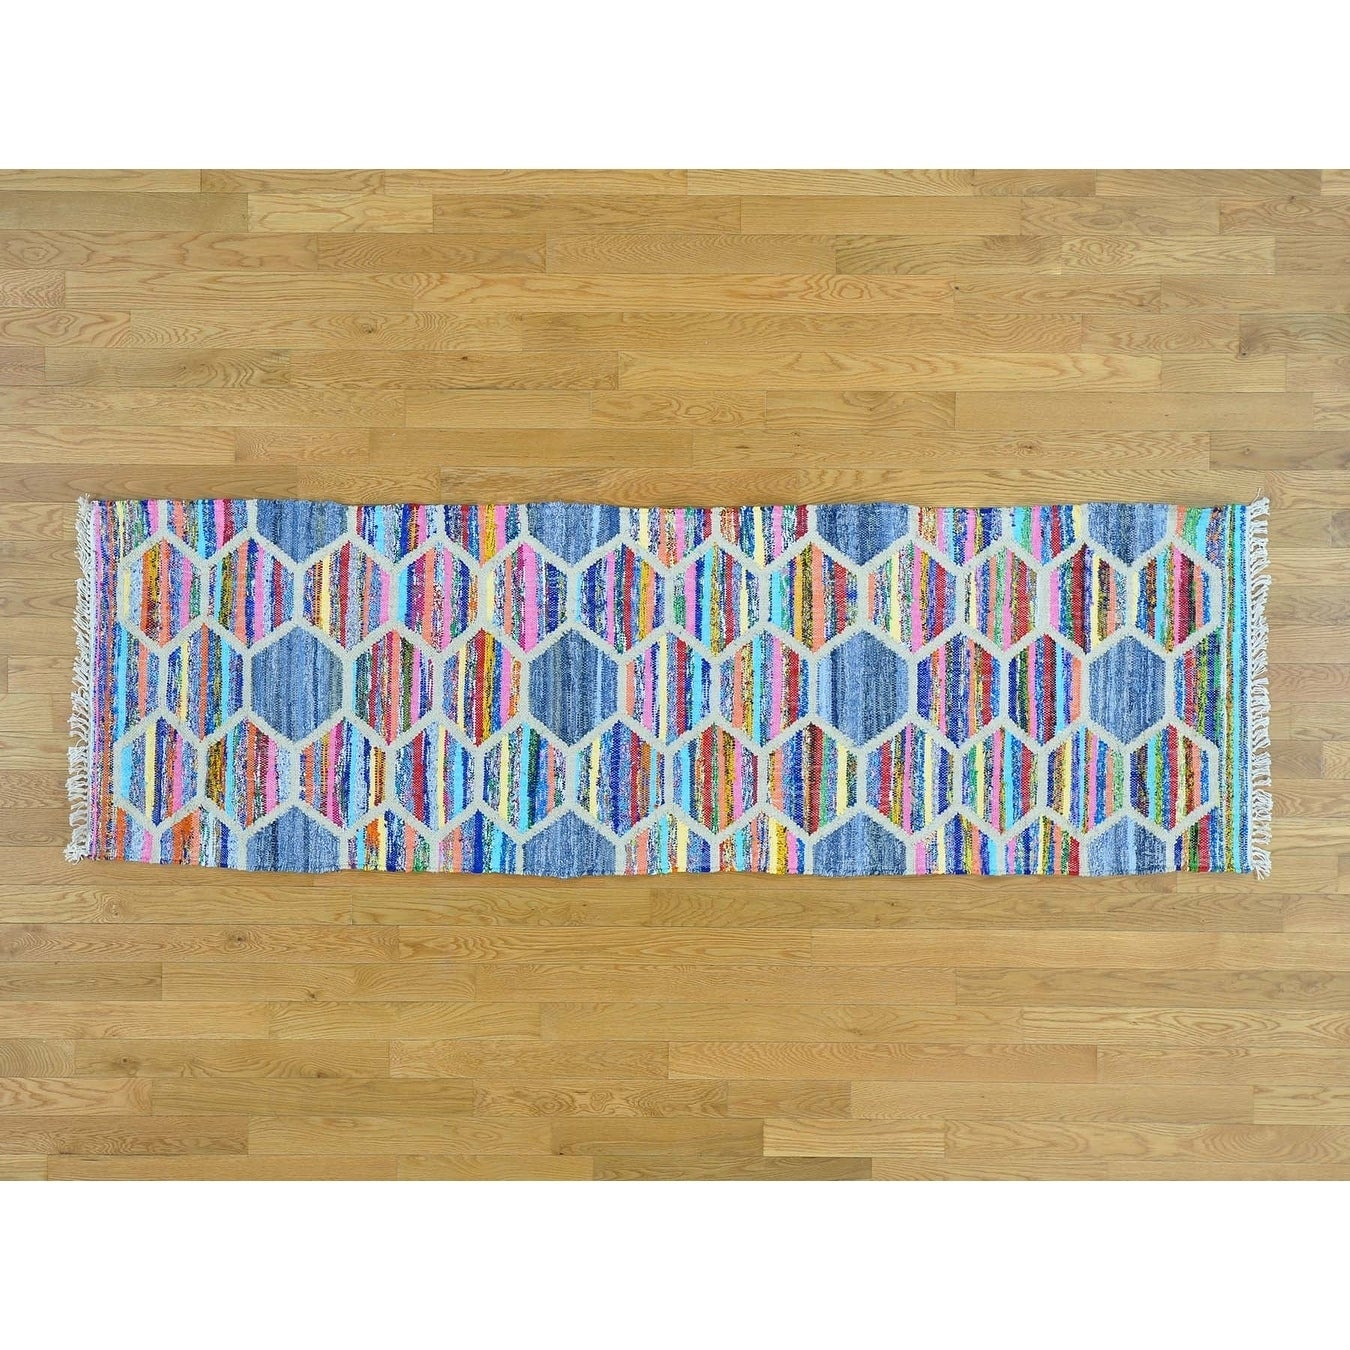 Hand Knotted Multicolored Flat Weave with Cotton Oriental Rug - 27 x 82